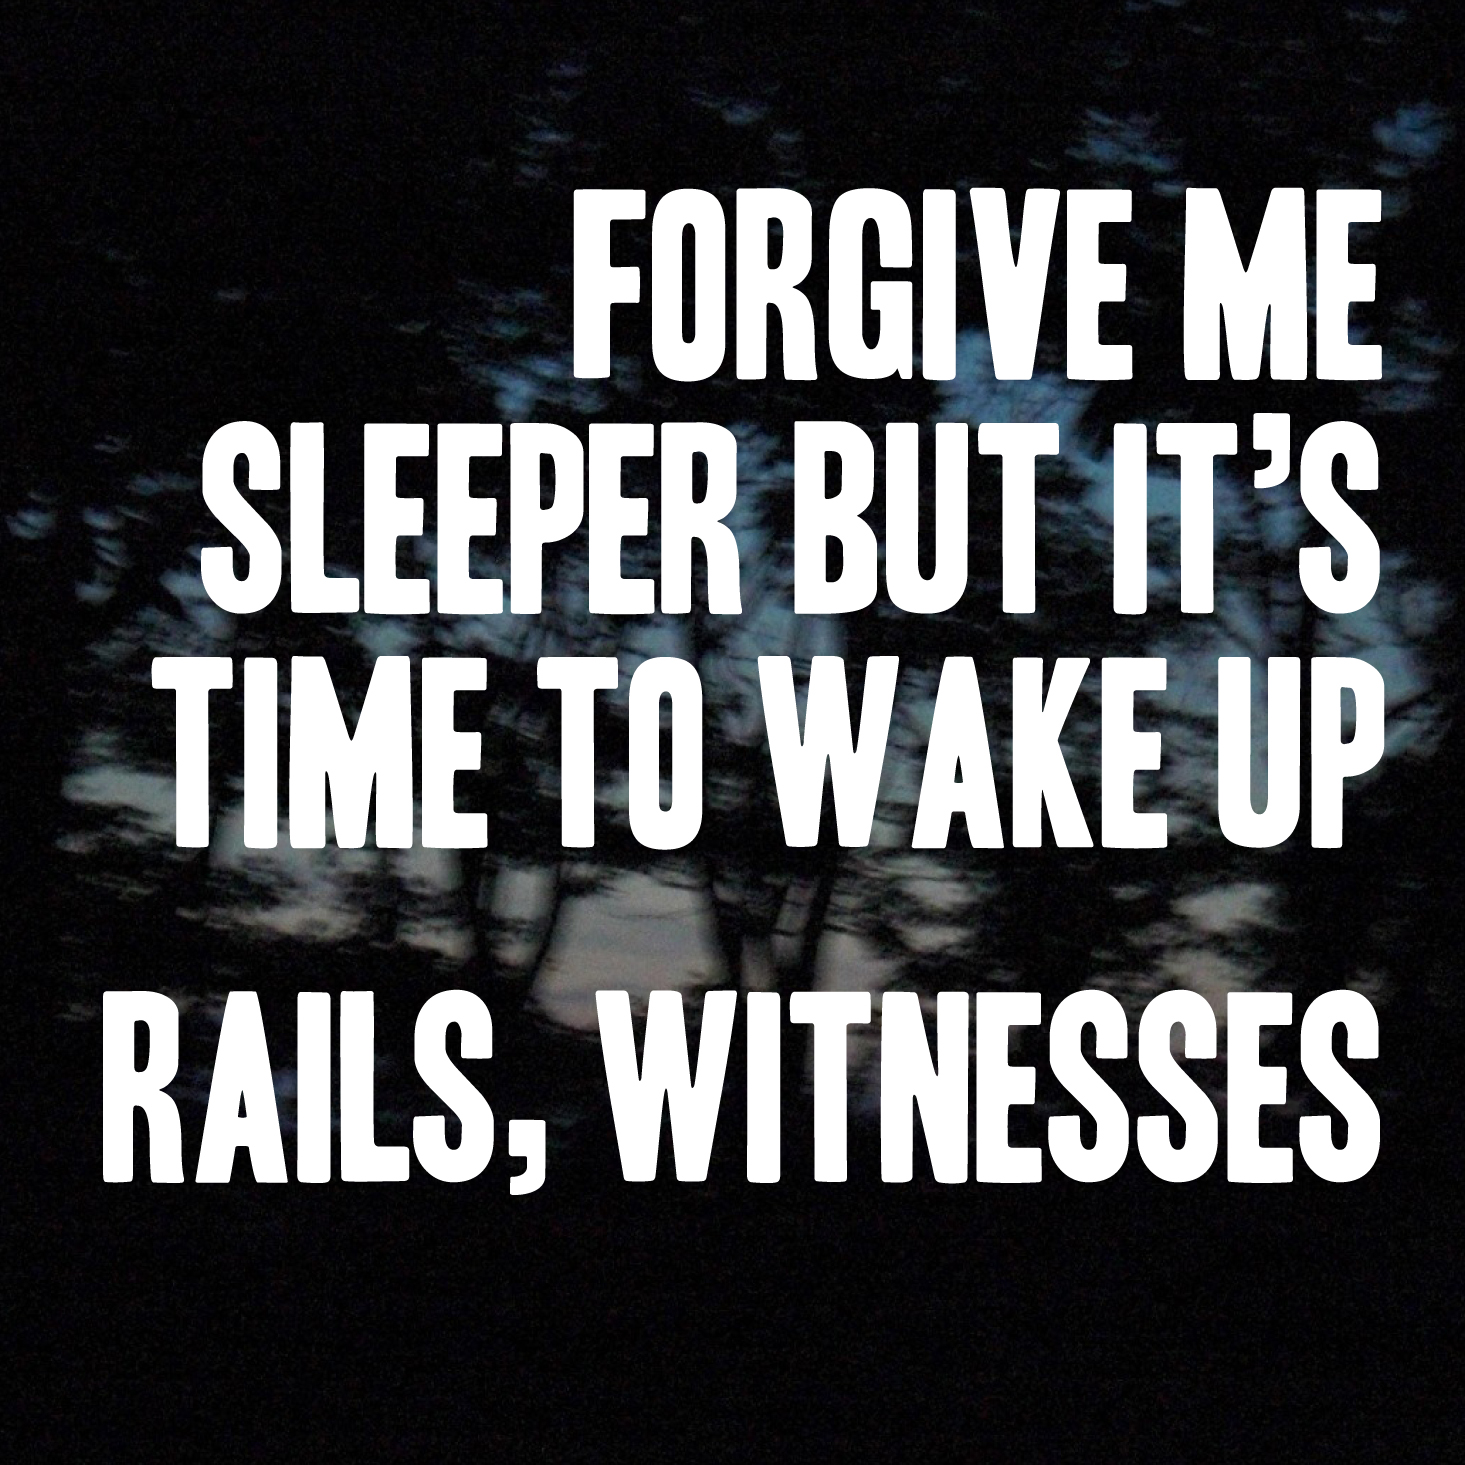 rails, witnesses - forgive me sleeper but it's time to wake up